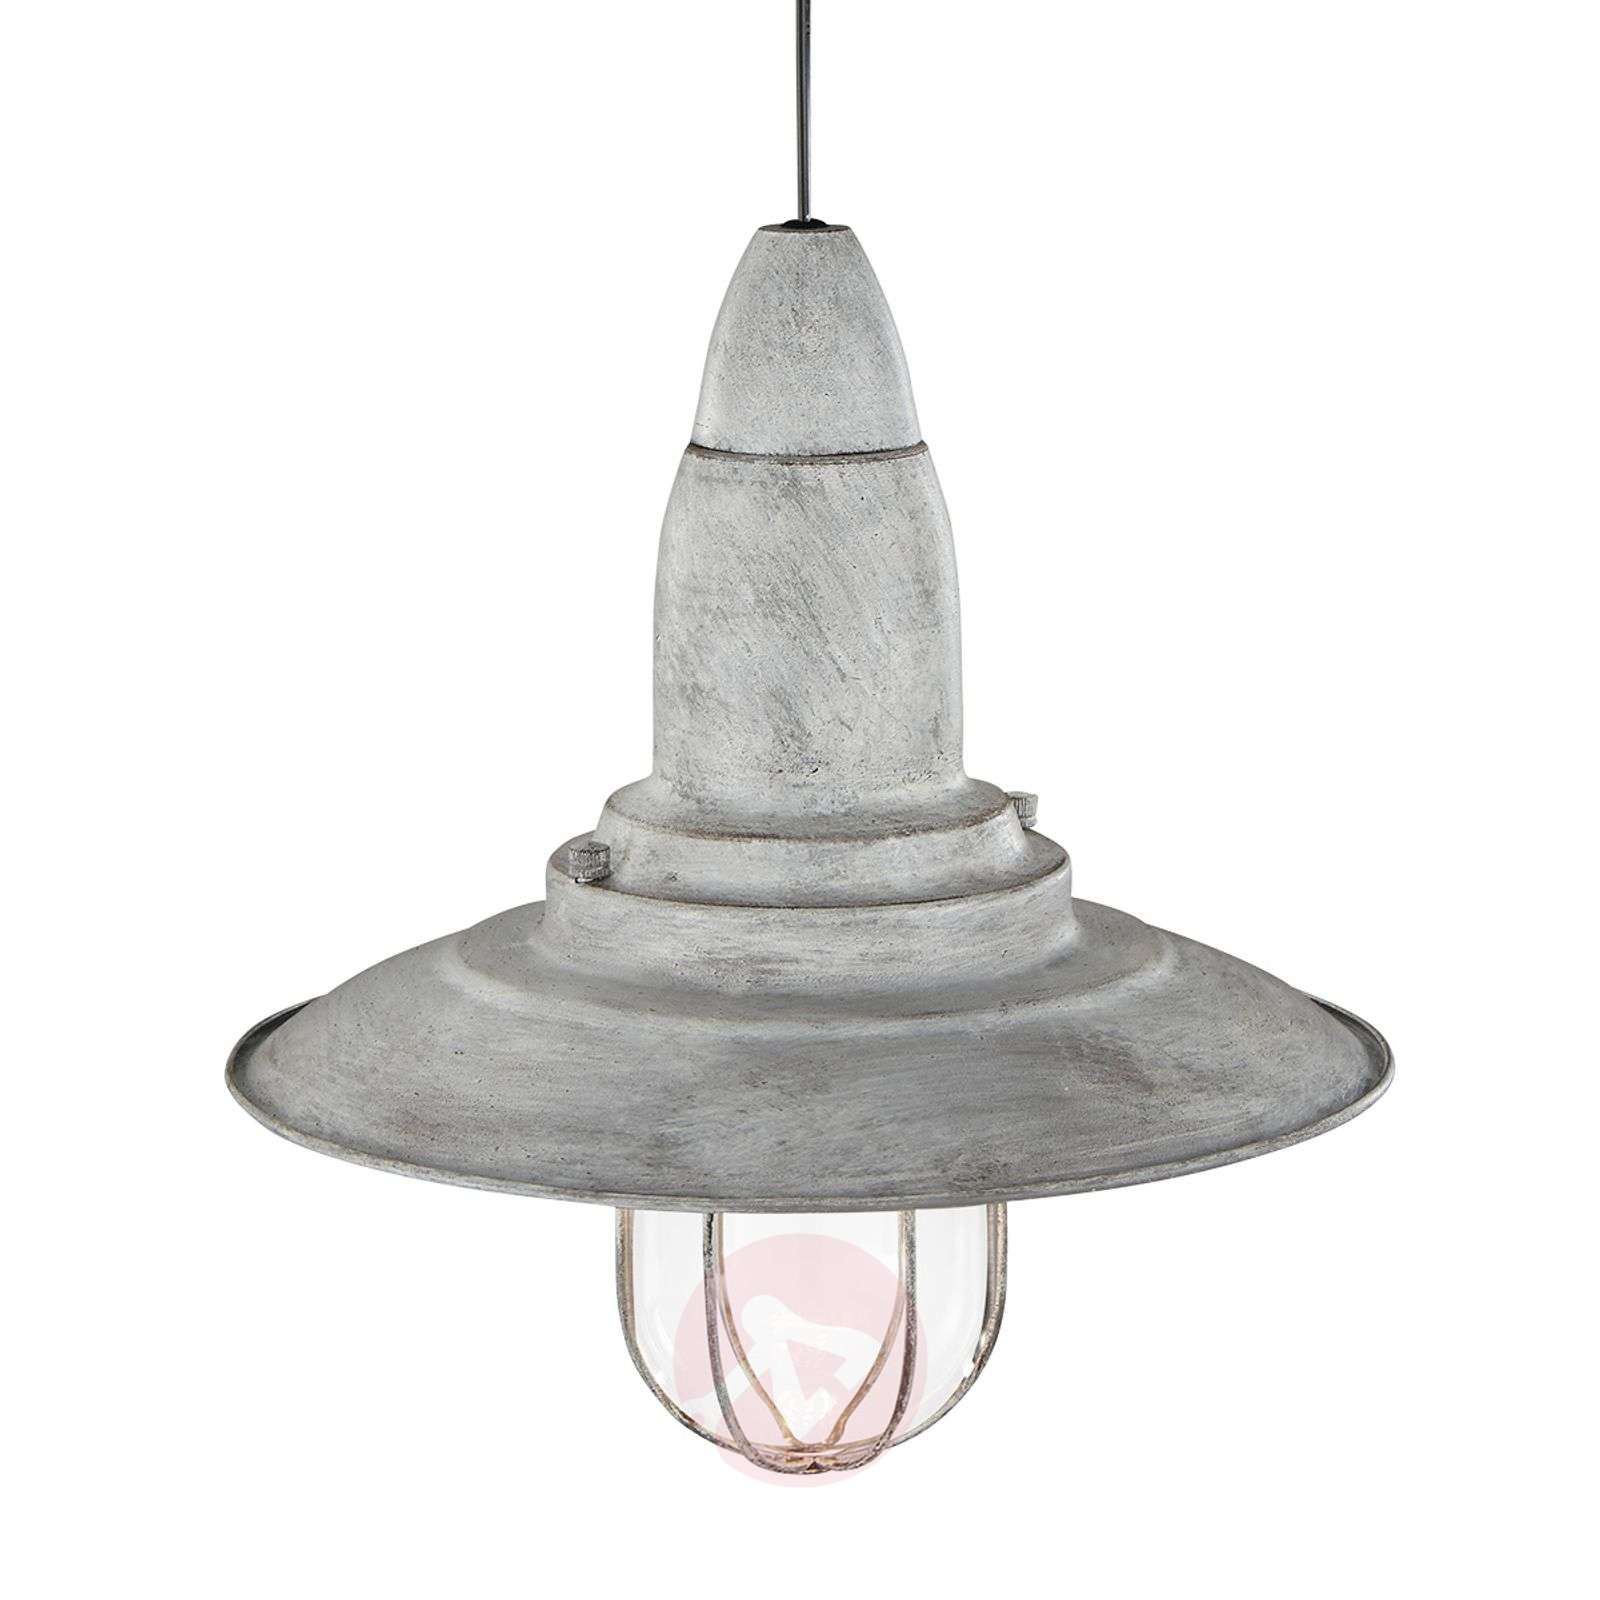 Maritime fisherman pendant light antique grey lights maritime fisherman pendant light antique grey 9005099 01 aloadofball Image collections